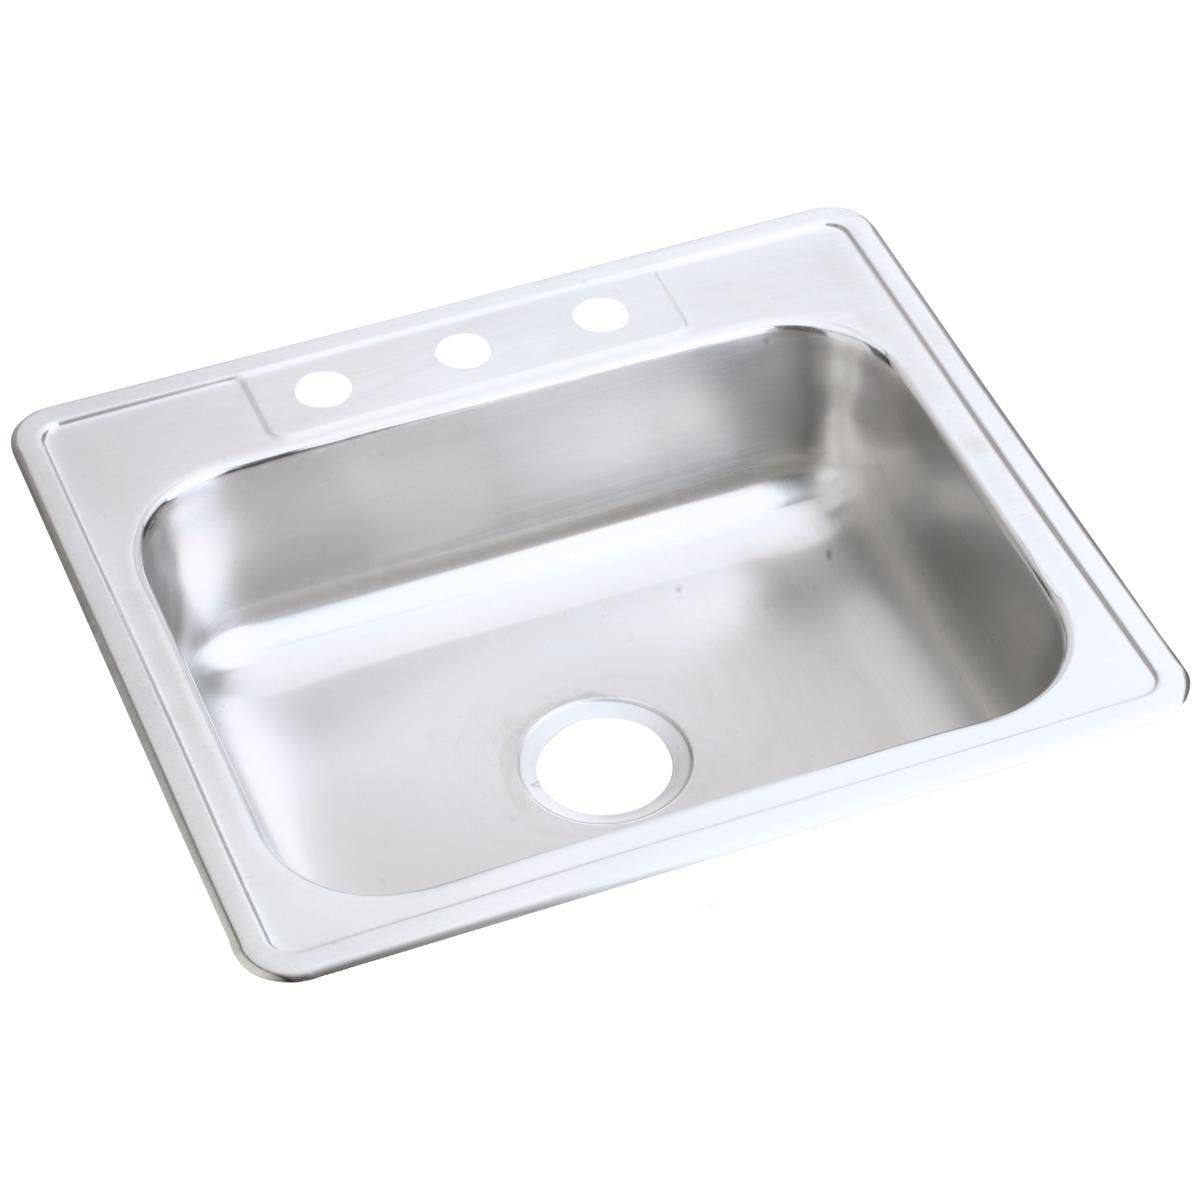 Dayton D125221 Single Bowl Top Mount Stainless Steel Sink